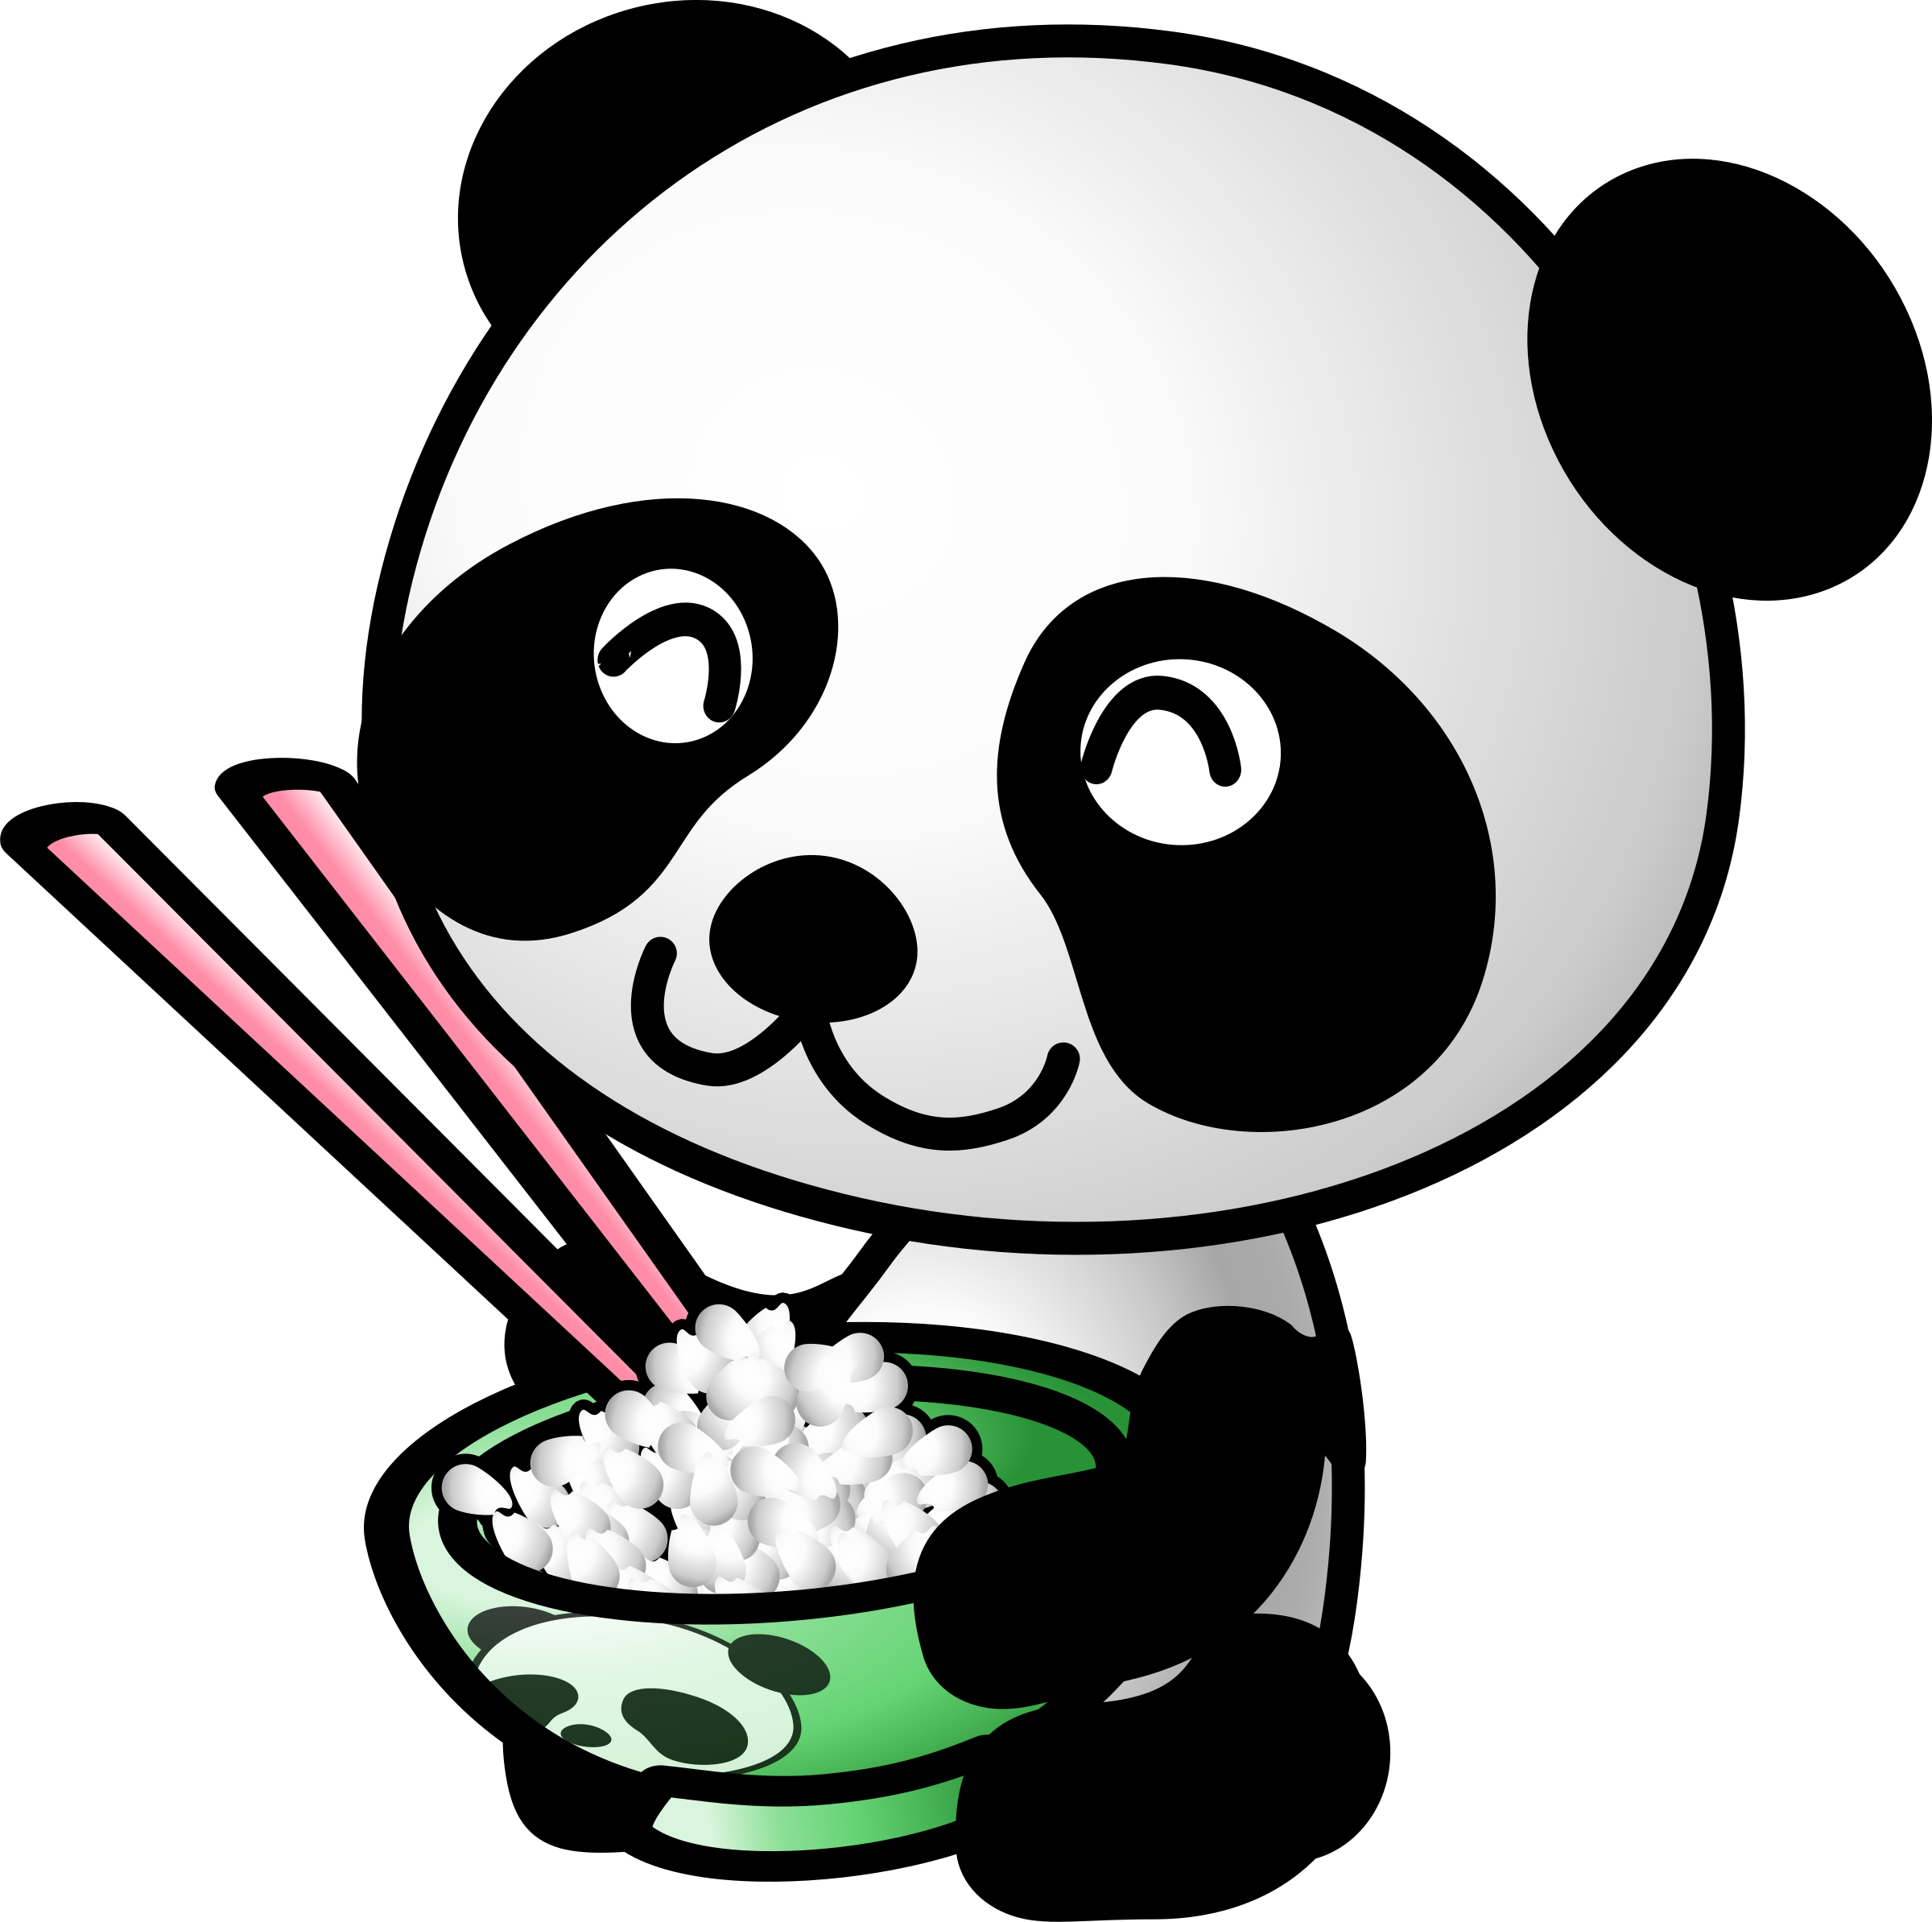 transparent download Girl eating cereal clipart. Rice panda big image